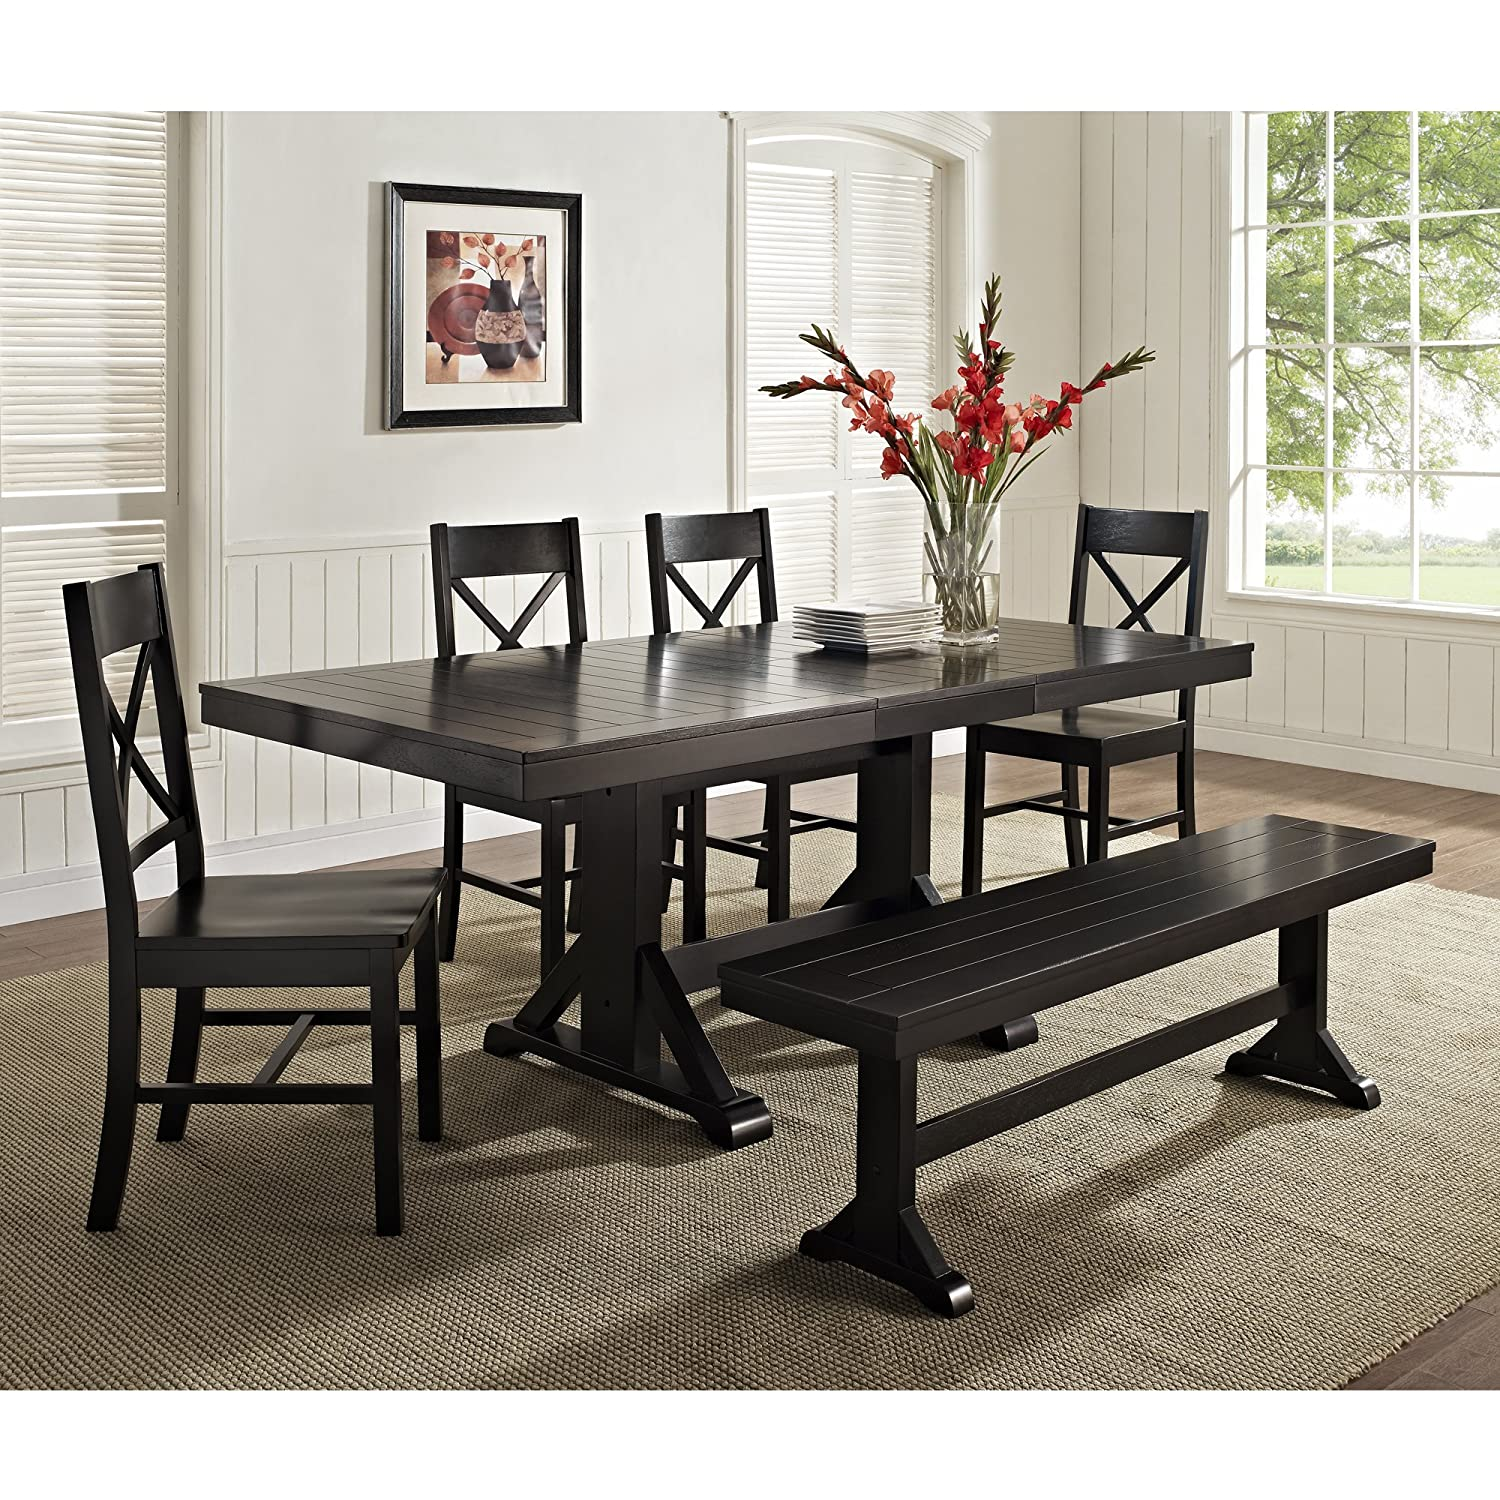 Amazon.com: WE Furniture Solid Wood Black Dining Bench: Kitchen ...